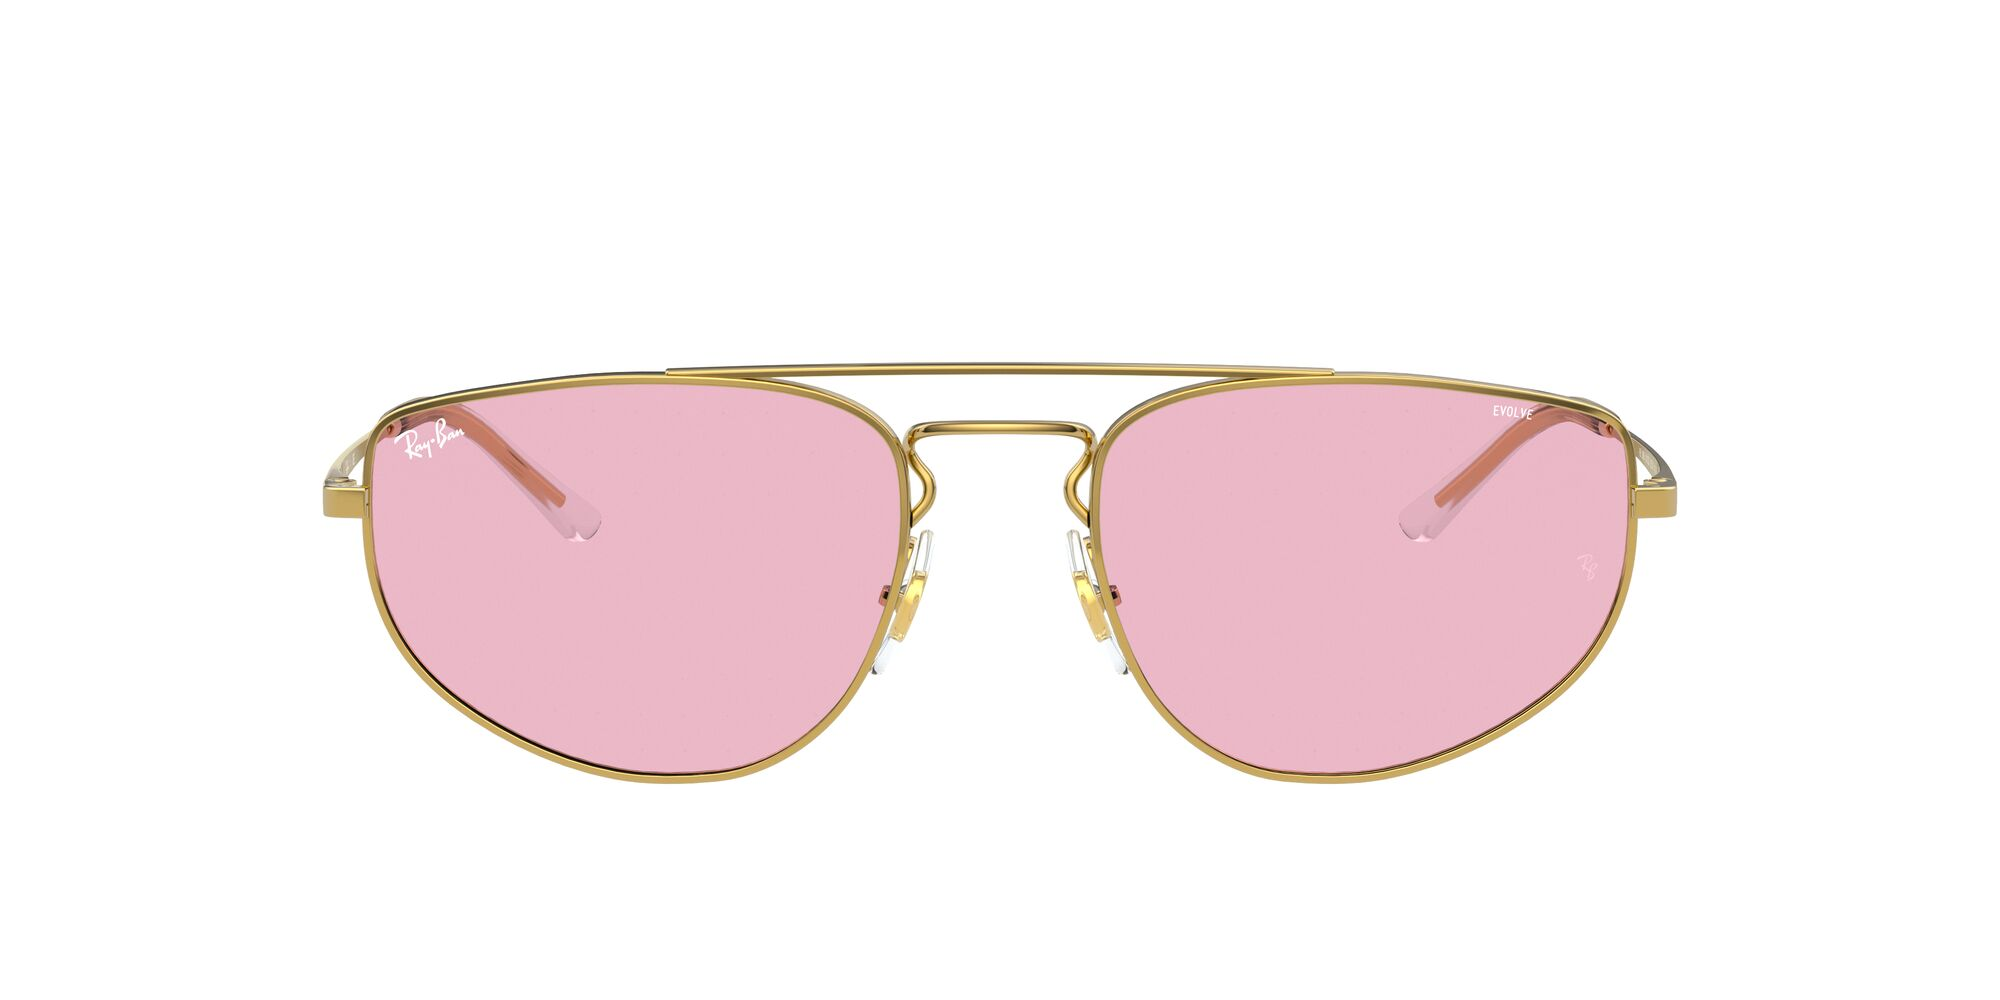 Front Ray-Ban Ray-Ban 0RB3668 001/Q3 55/19 Goud/Roze